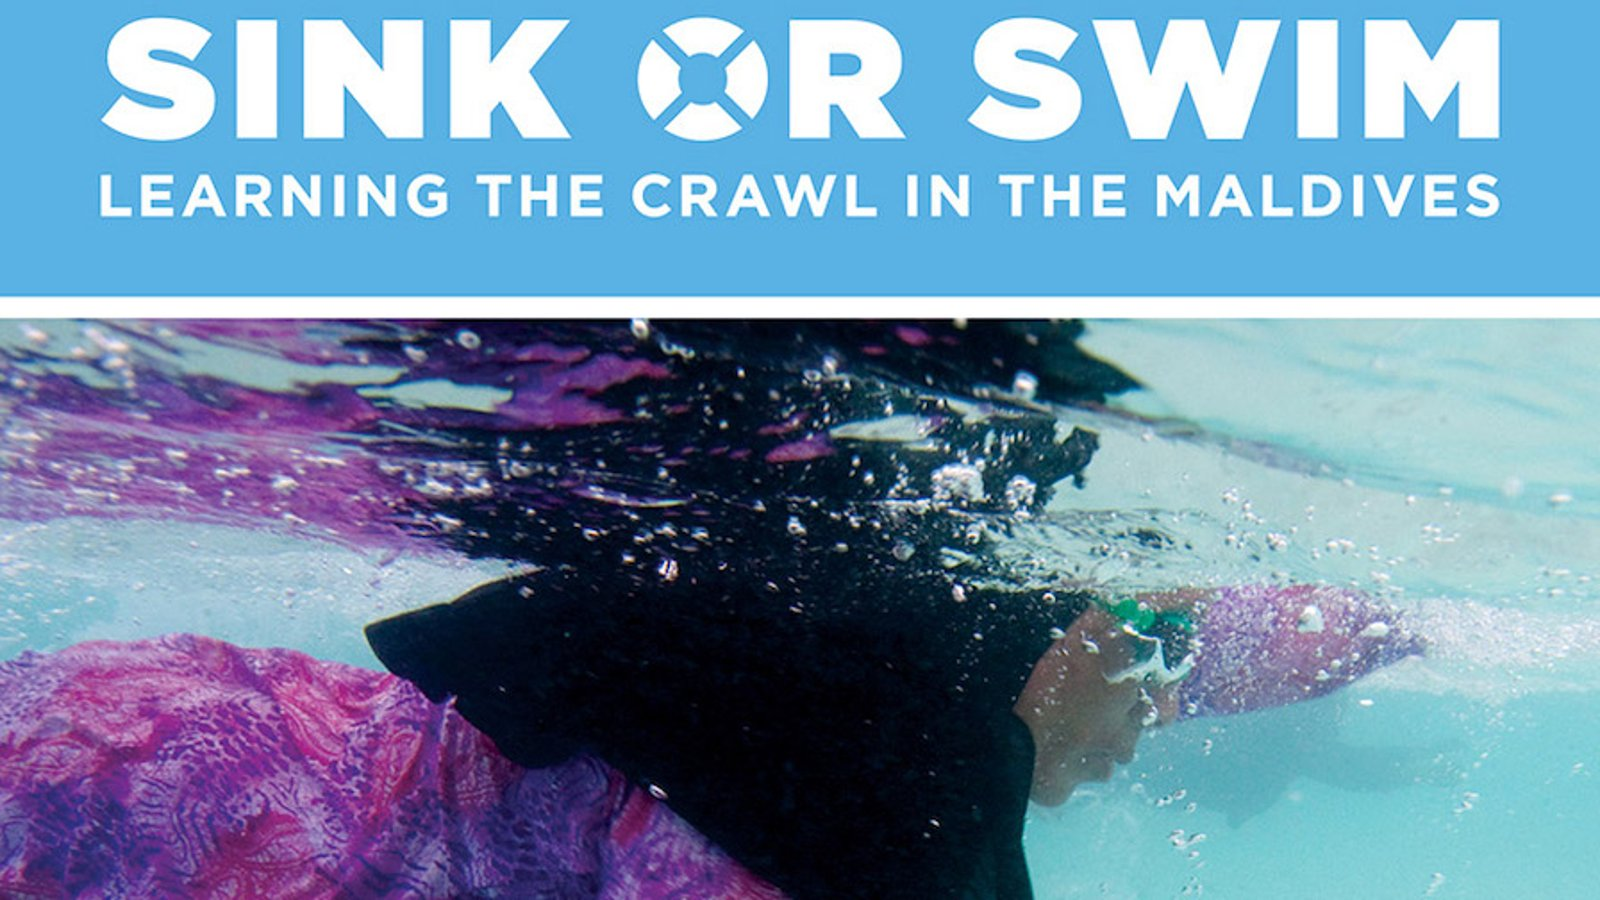 Sink or Swim - Learning the Crawl in the Maldives